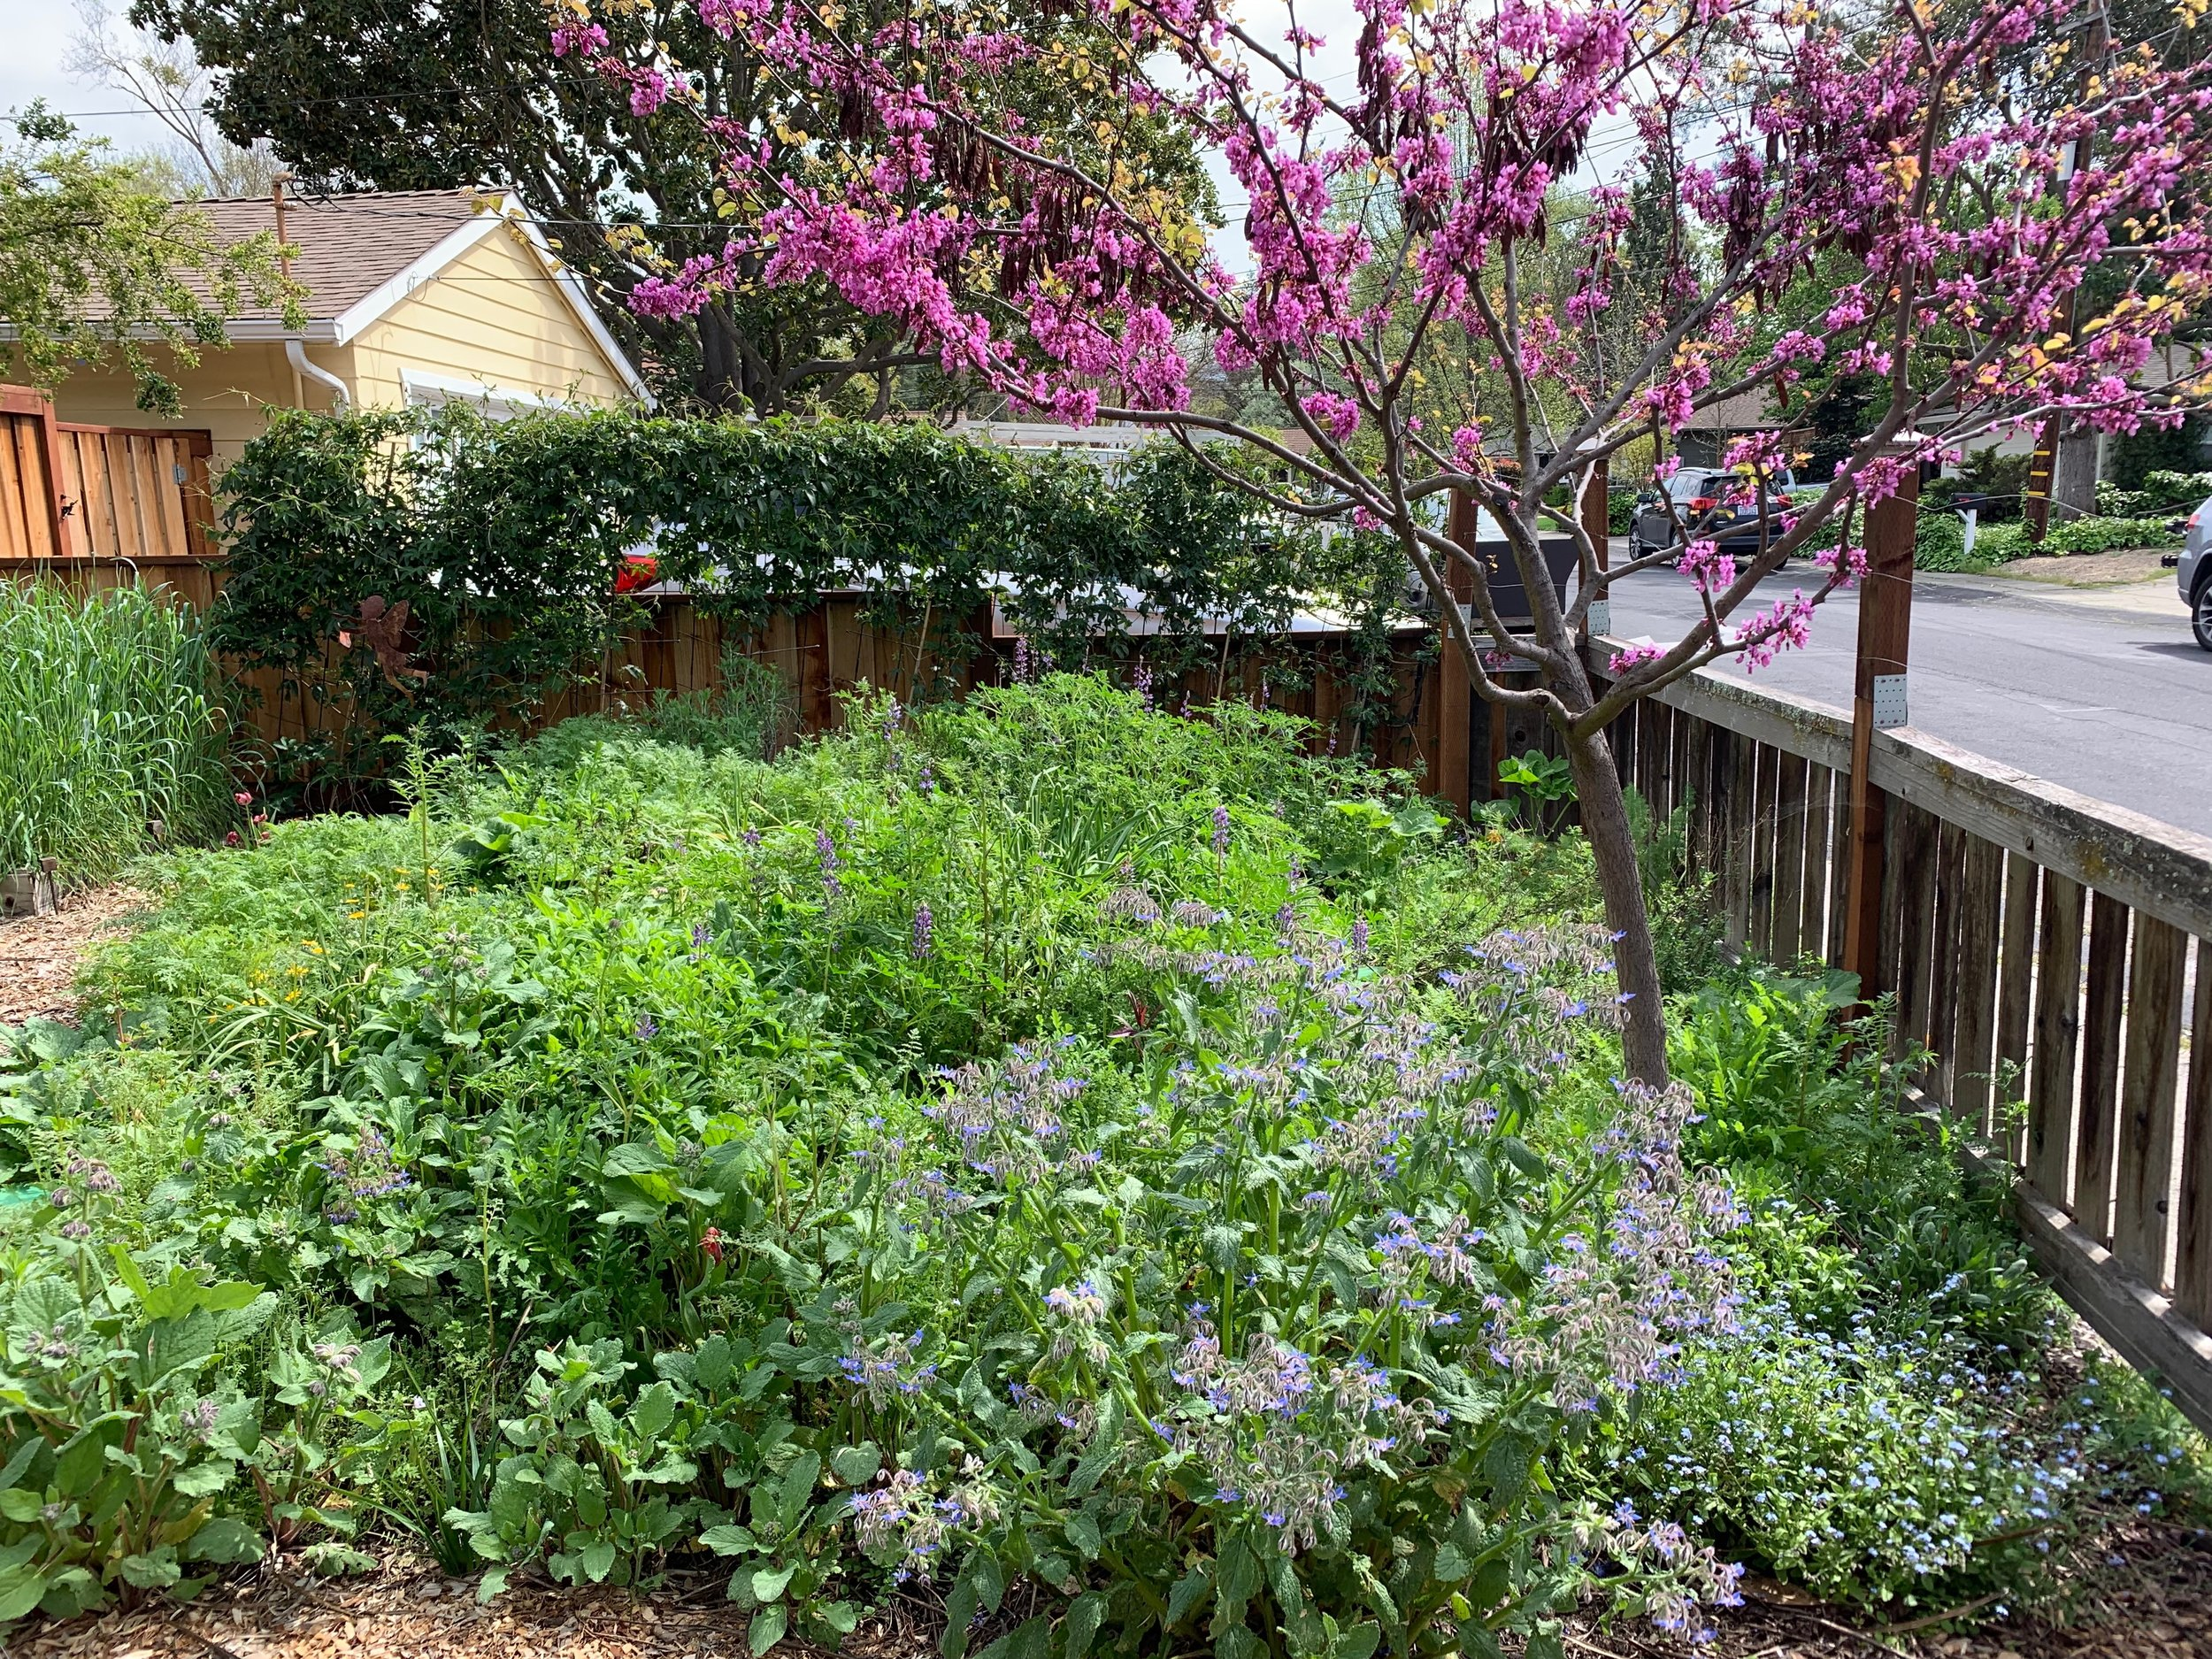 The pollinator garden just about to burst. Redbud, lupine, borage, five spot, forget-me-not, and soon to be covered with phacelia.